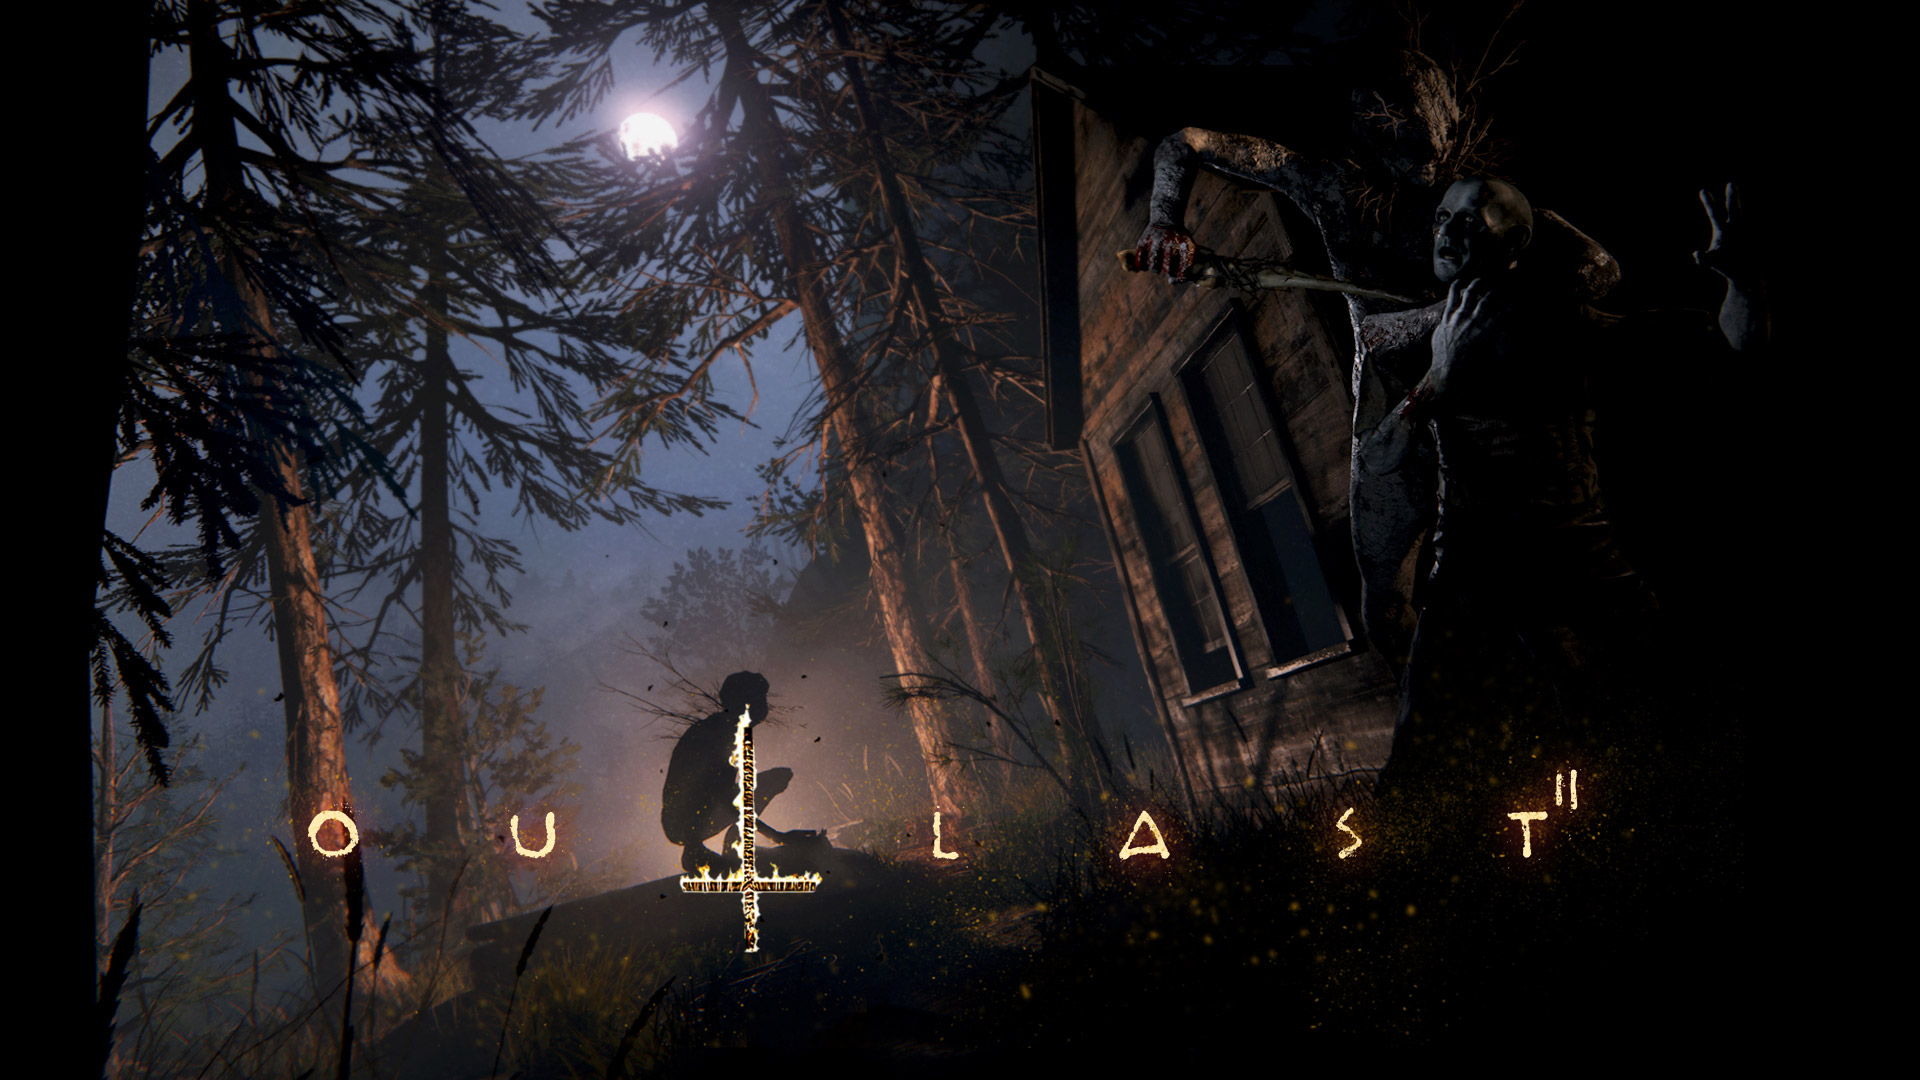 Free Outlast 2 Wallpaper in 1920x1080